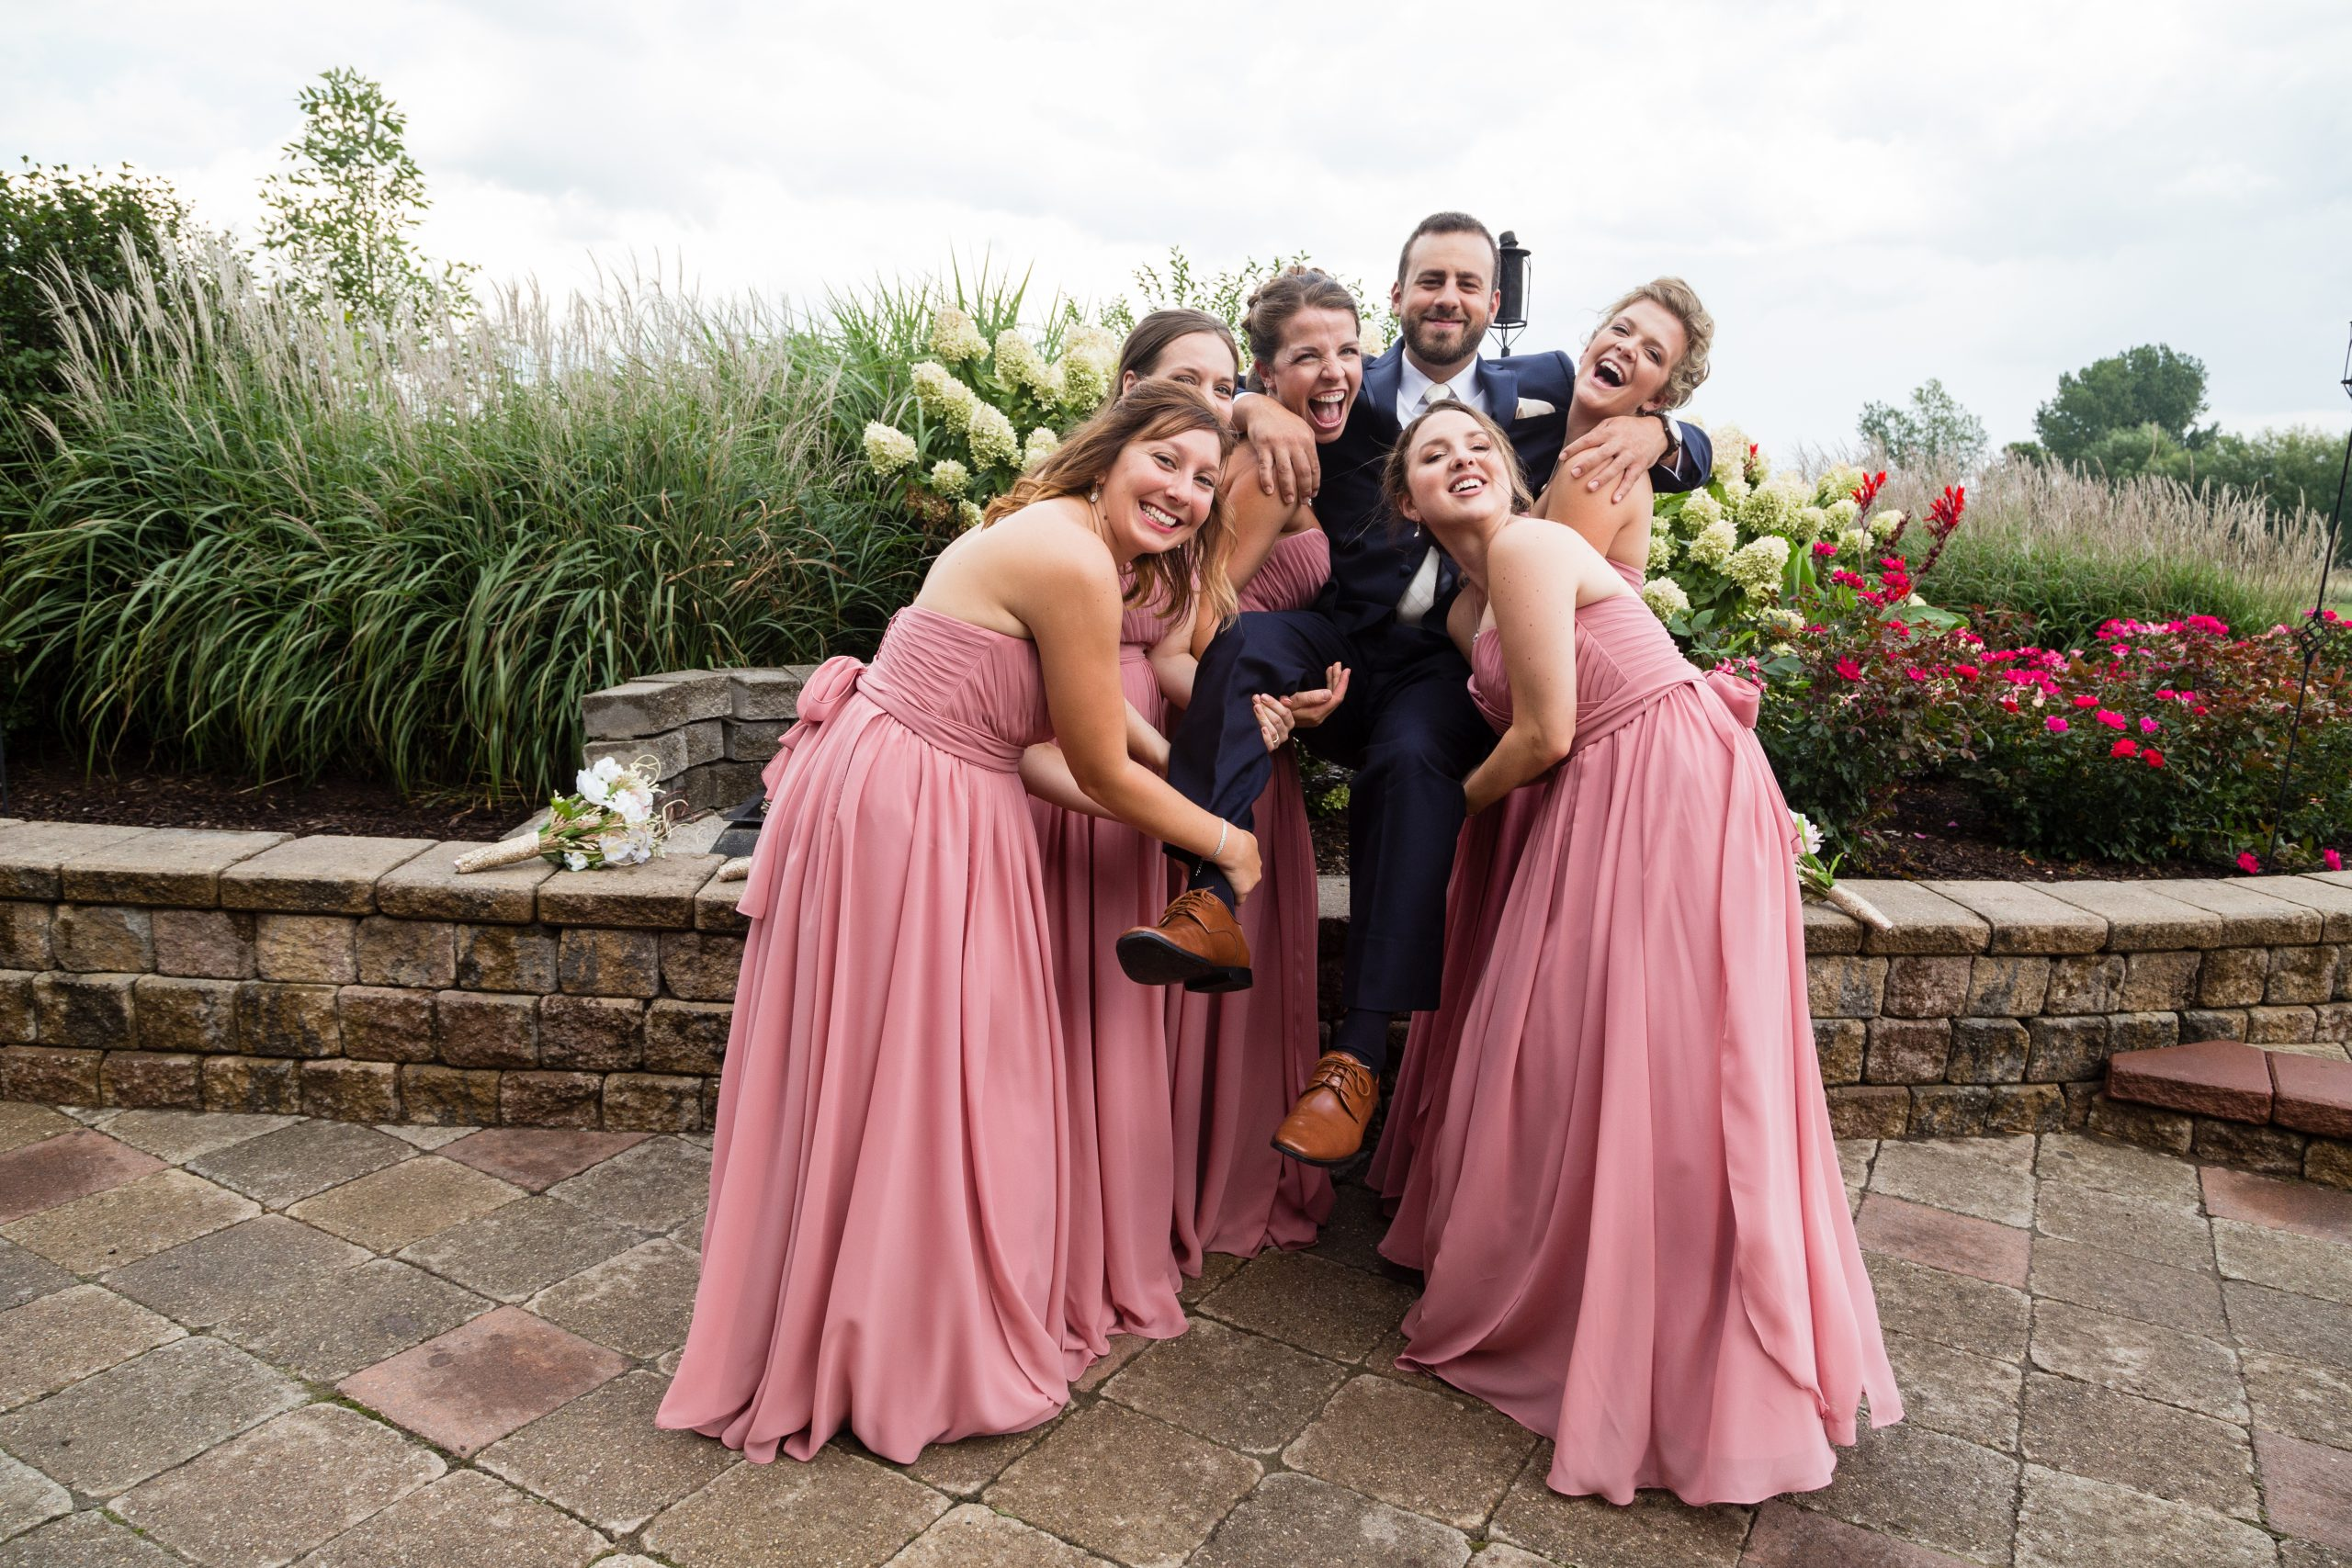 Funny Wedding Pose Ideas You Should Try Fallesen Photography Llc